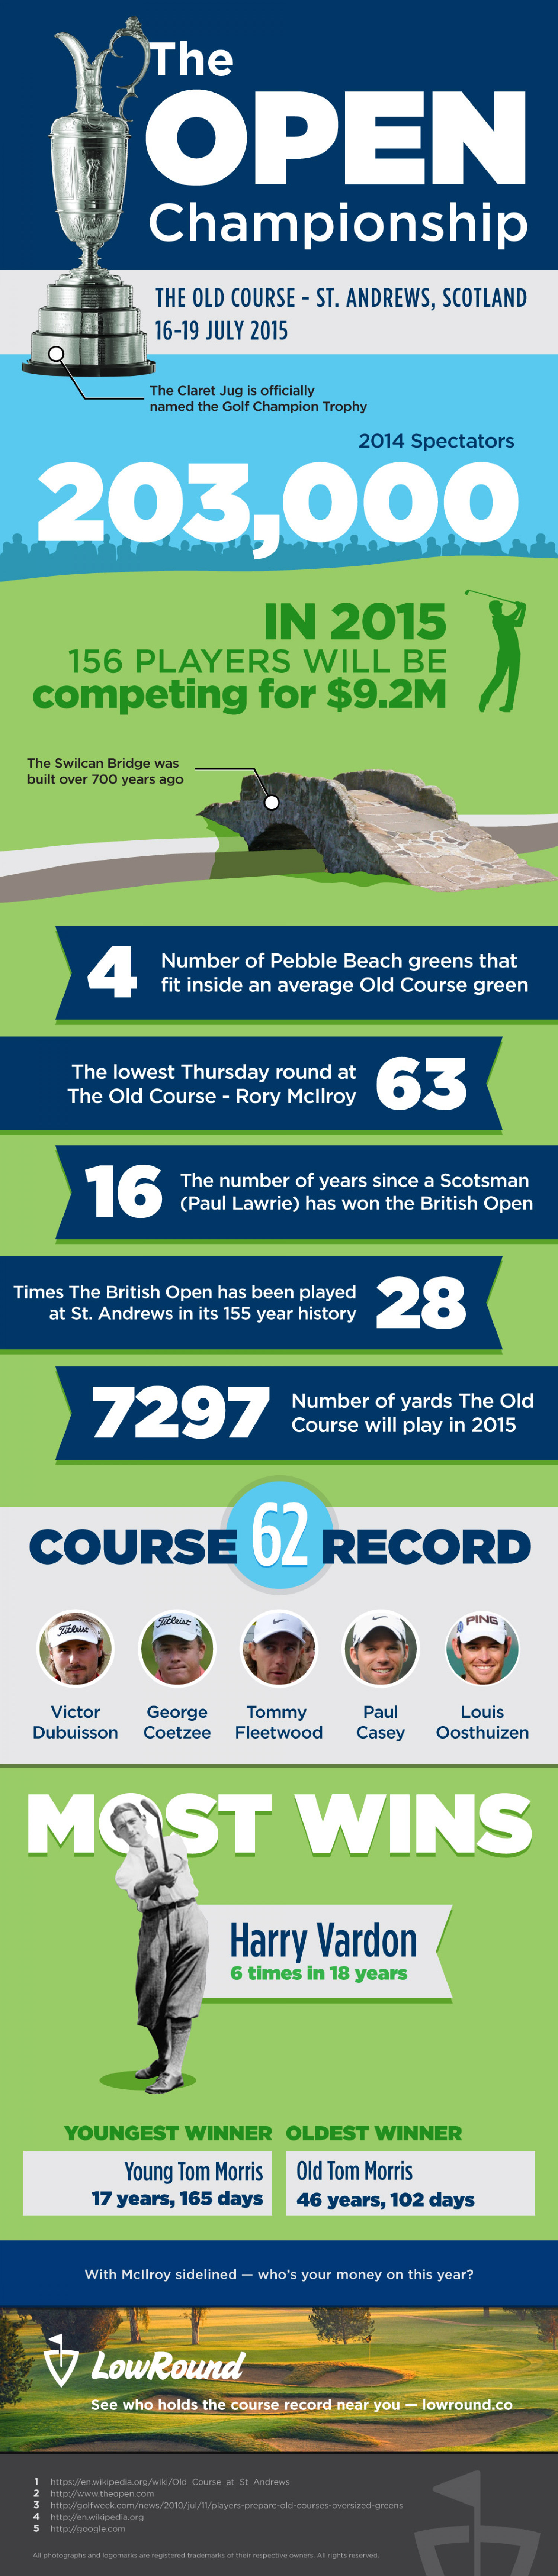 Custom Golf Infographic for The 2015 Open Championship Infographic